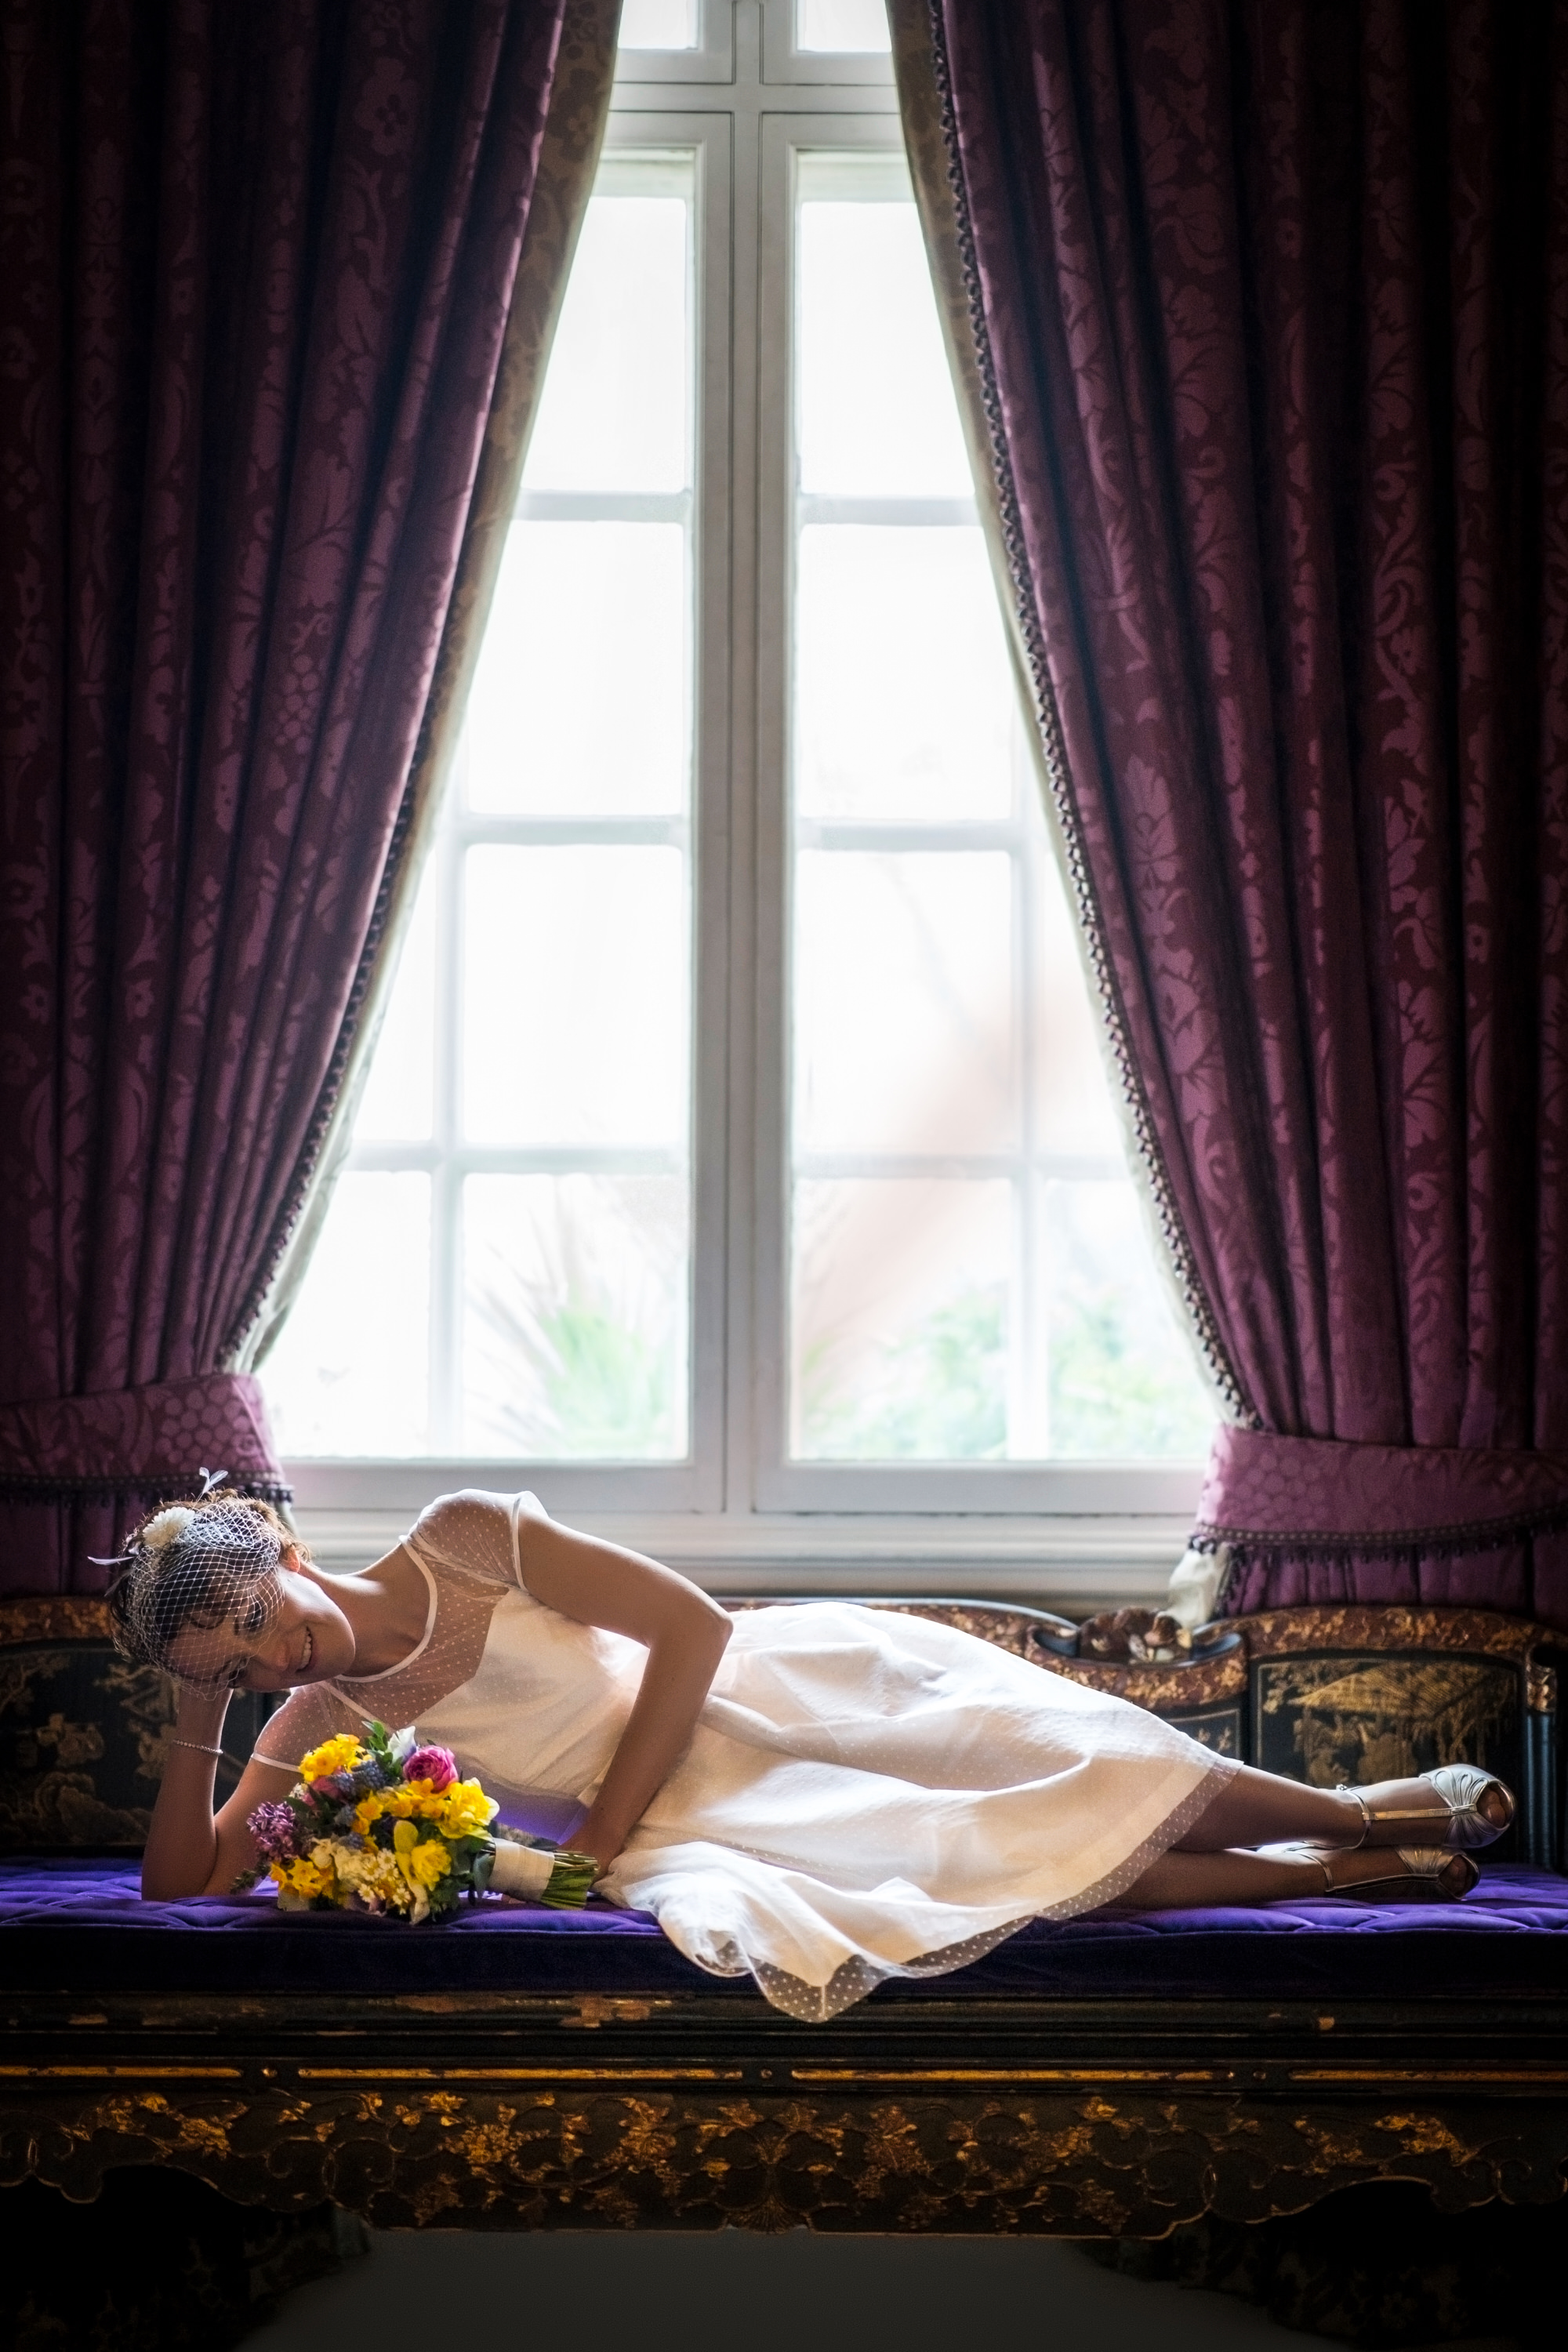 Why Choose The Roseate Reading? - The beautifully restored Edwardian listed mansion is majestic in person, offering exclusive accommodation, stunning event rooms fine cuisine and of course, the perfect location to say 'I Do'. There's simply no other place quite like it in the UK.